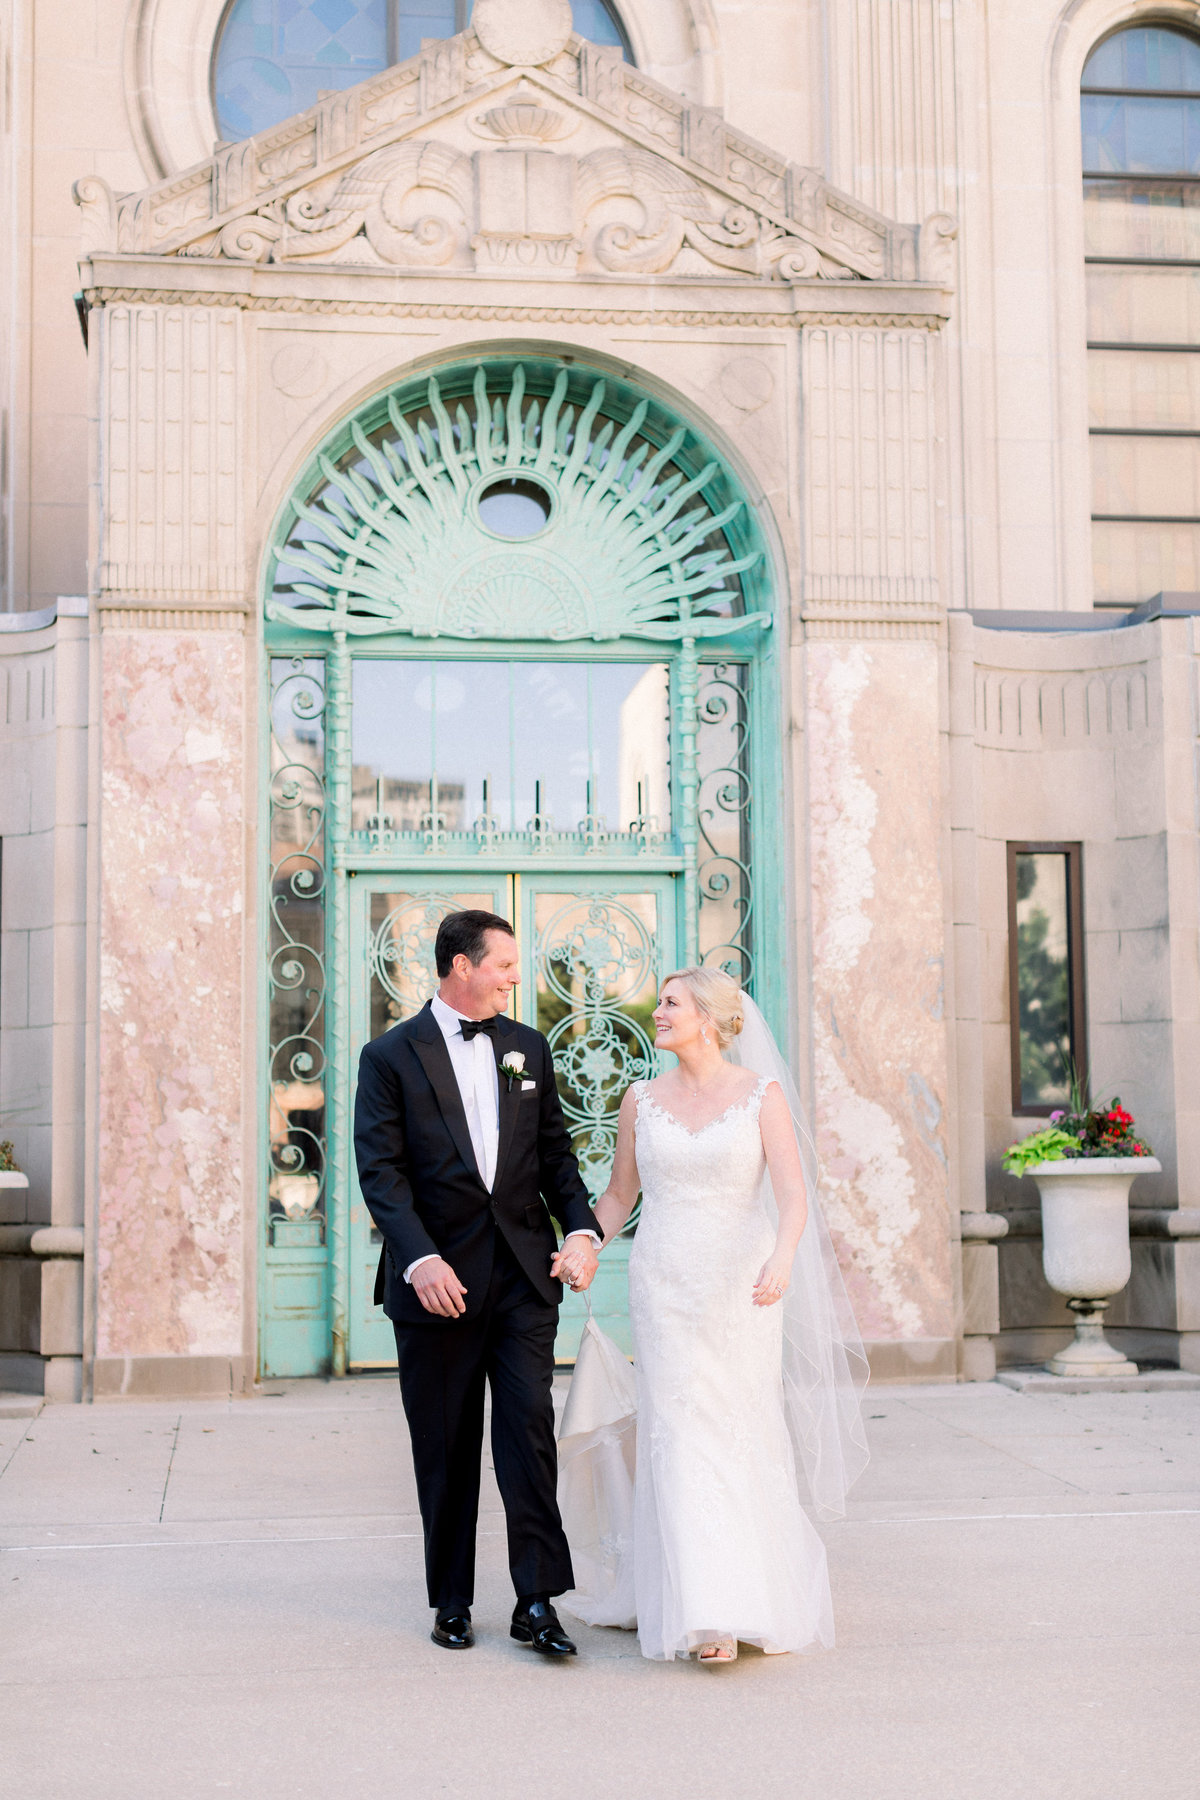 TiffaneyChildsPhotography-ChicagoWeddingPhotographer-Christine+Patrick-MundeleinAuditoriumWedding-BridalPortraits-88